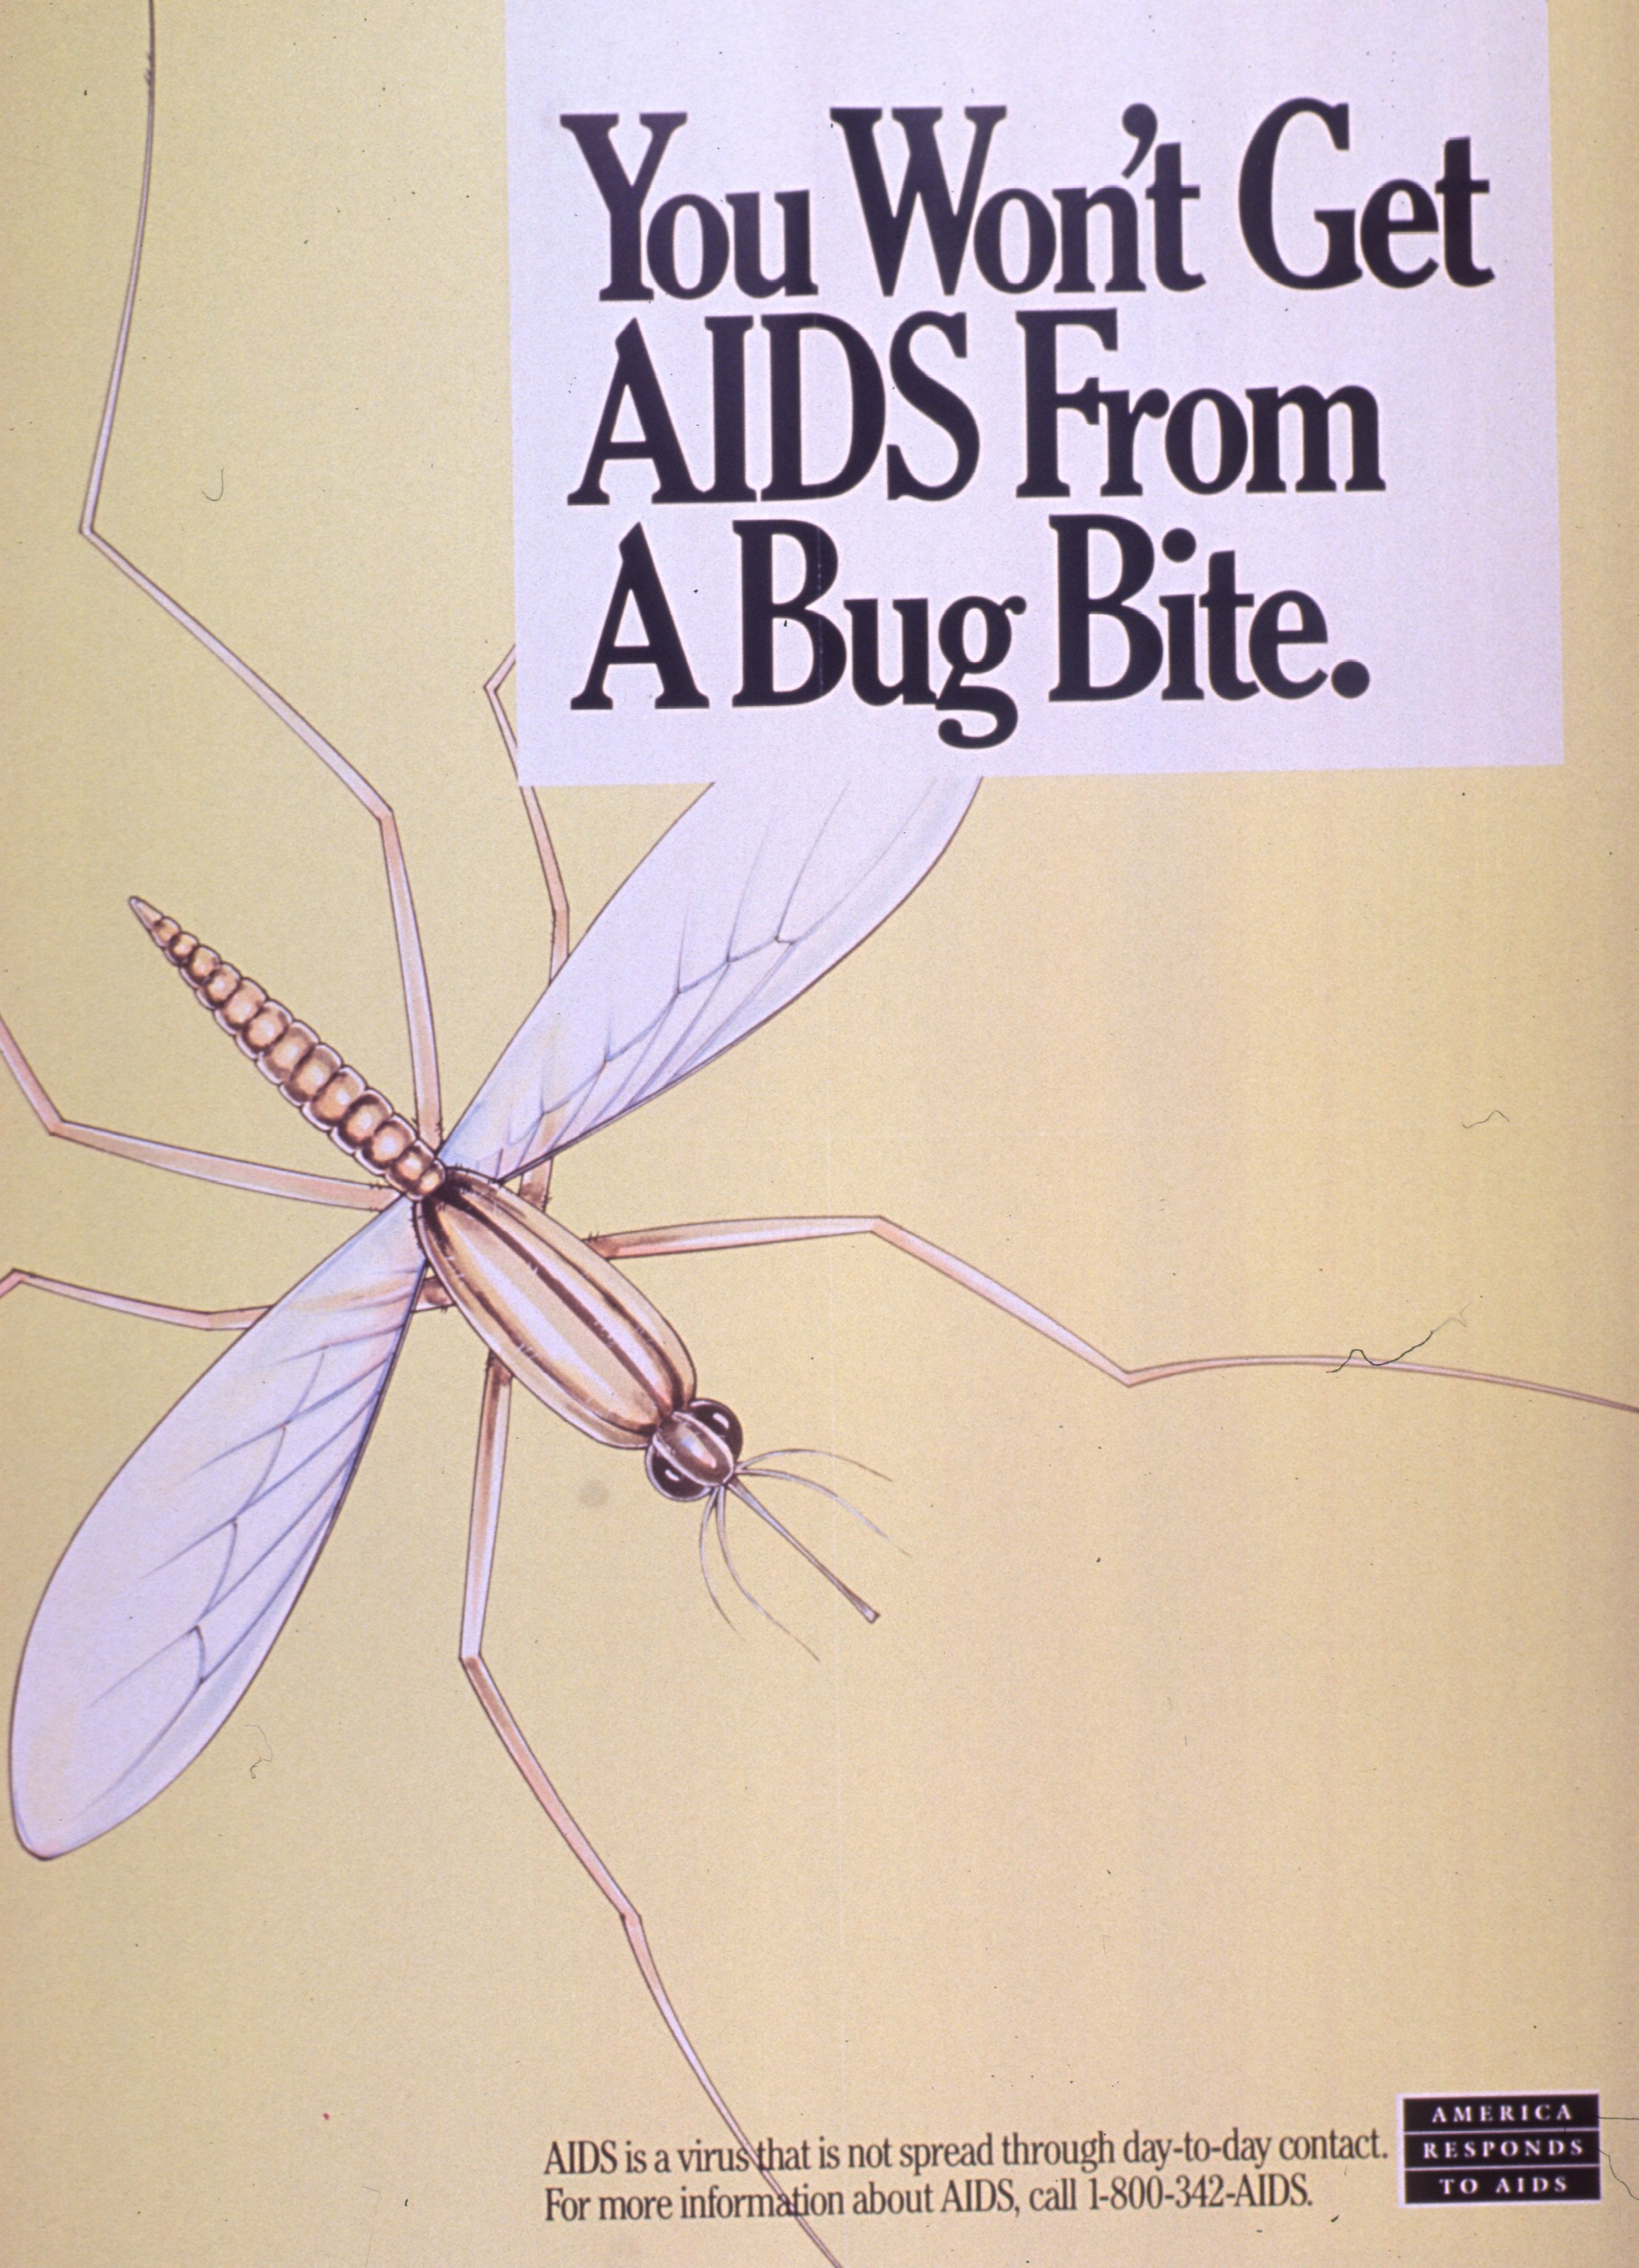 You won't get AIDS from a bug bite